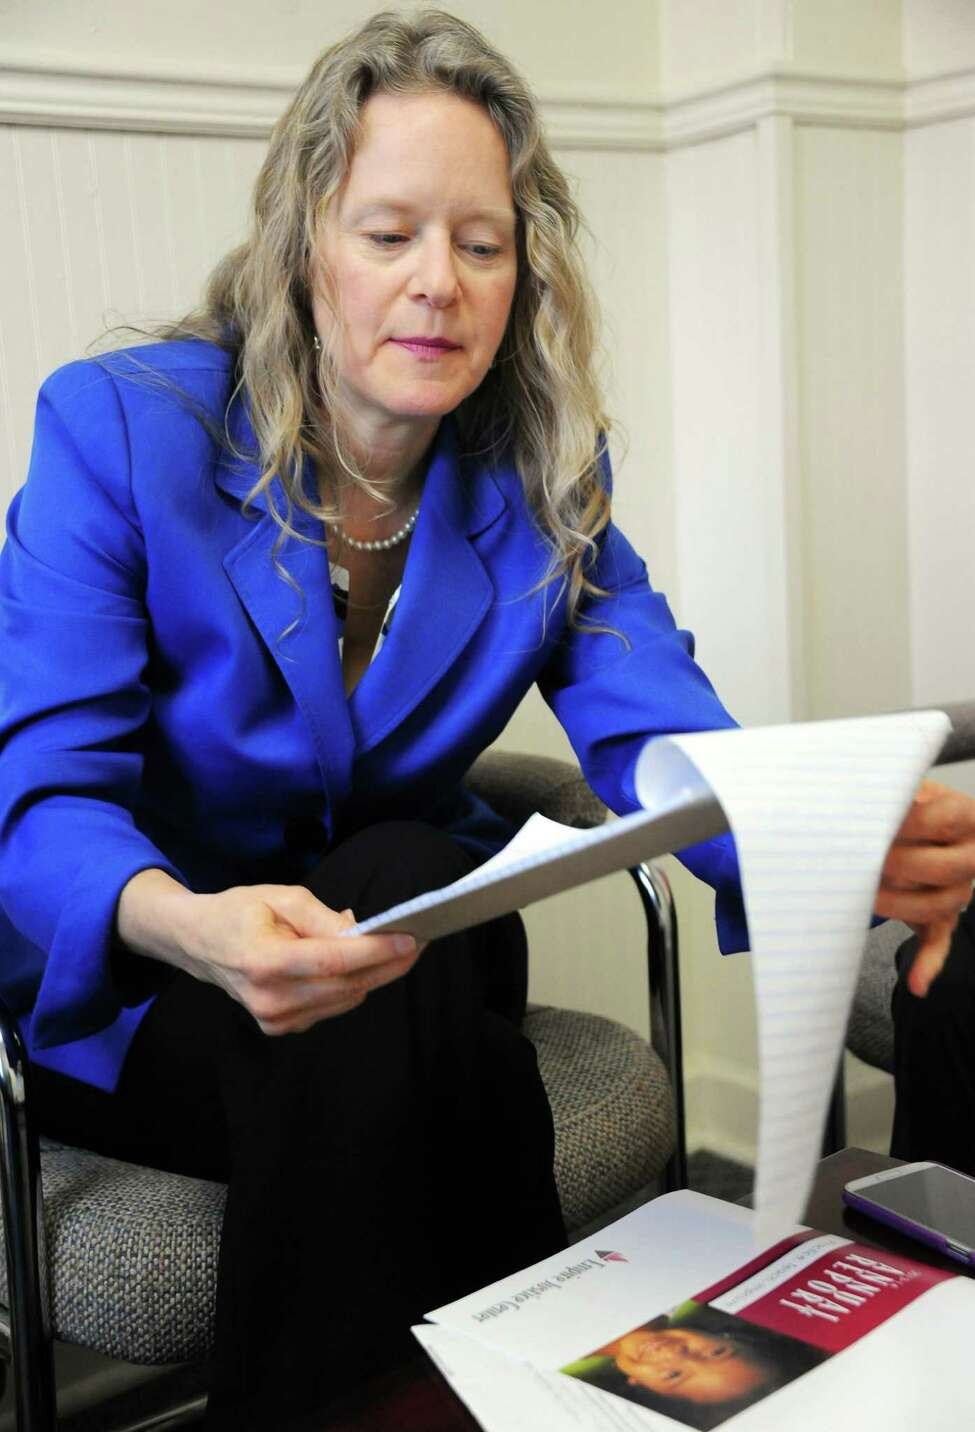 Albany field office director Jill Peckenpaugh in the U.S. Committee for Refugees and Immigrants offices Wednesday March 9, 2016 in Albany, NY. (John Carl D'Annibale / Times Union)